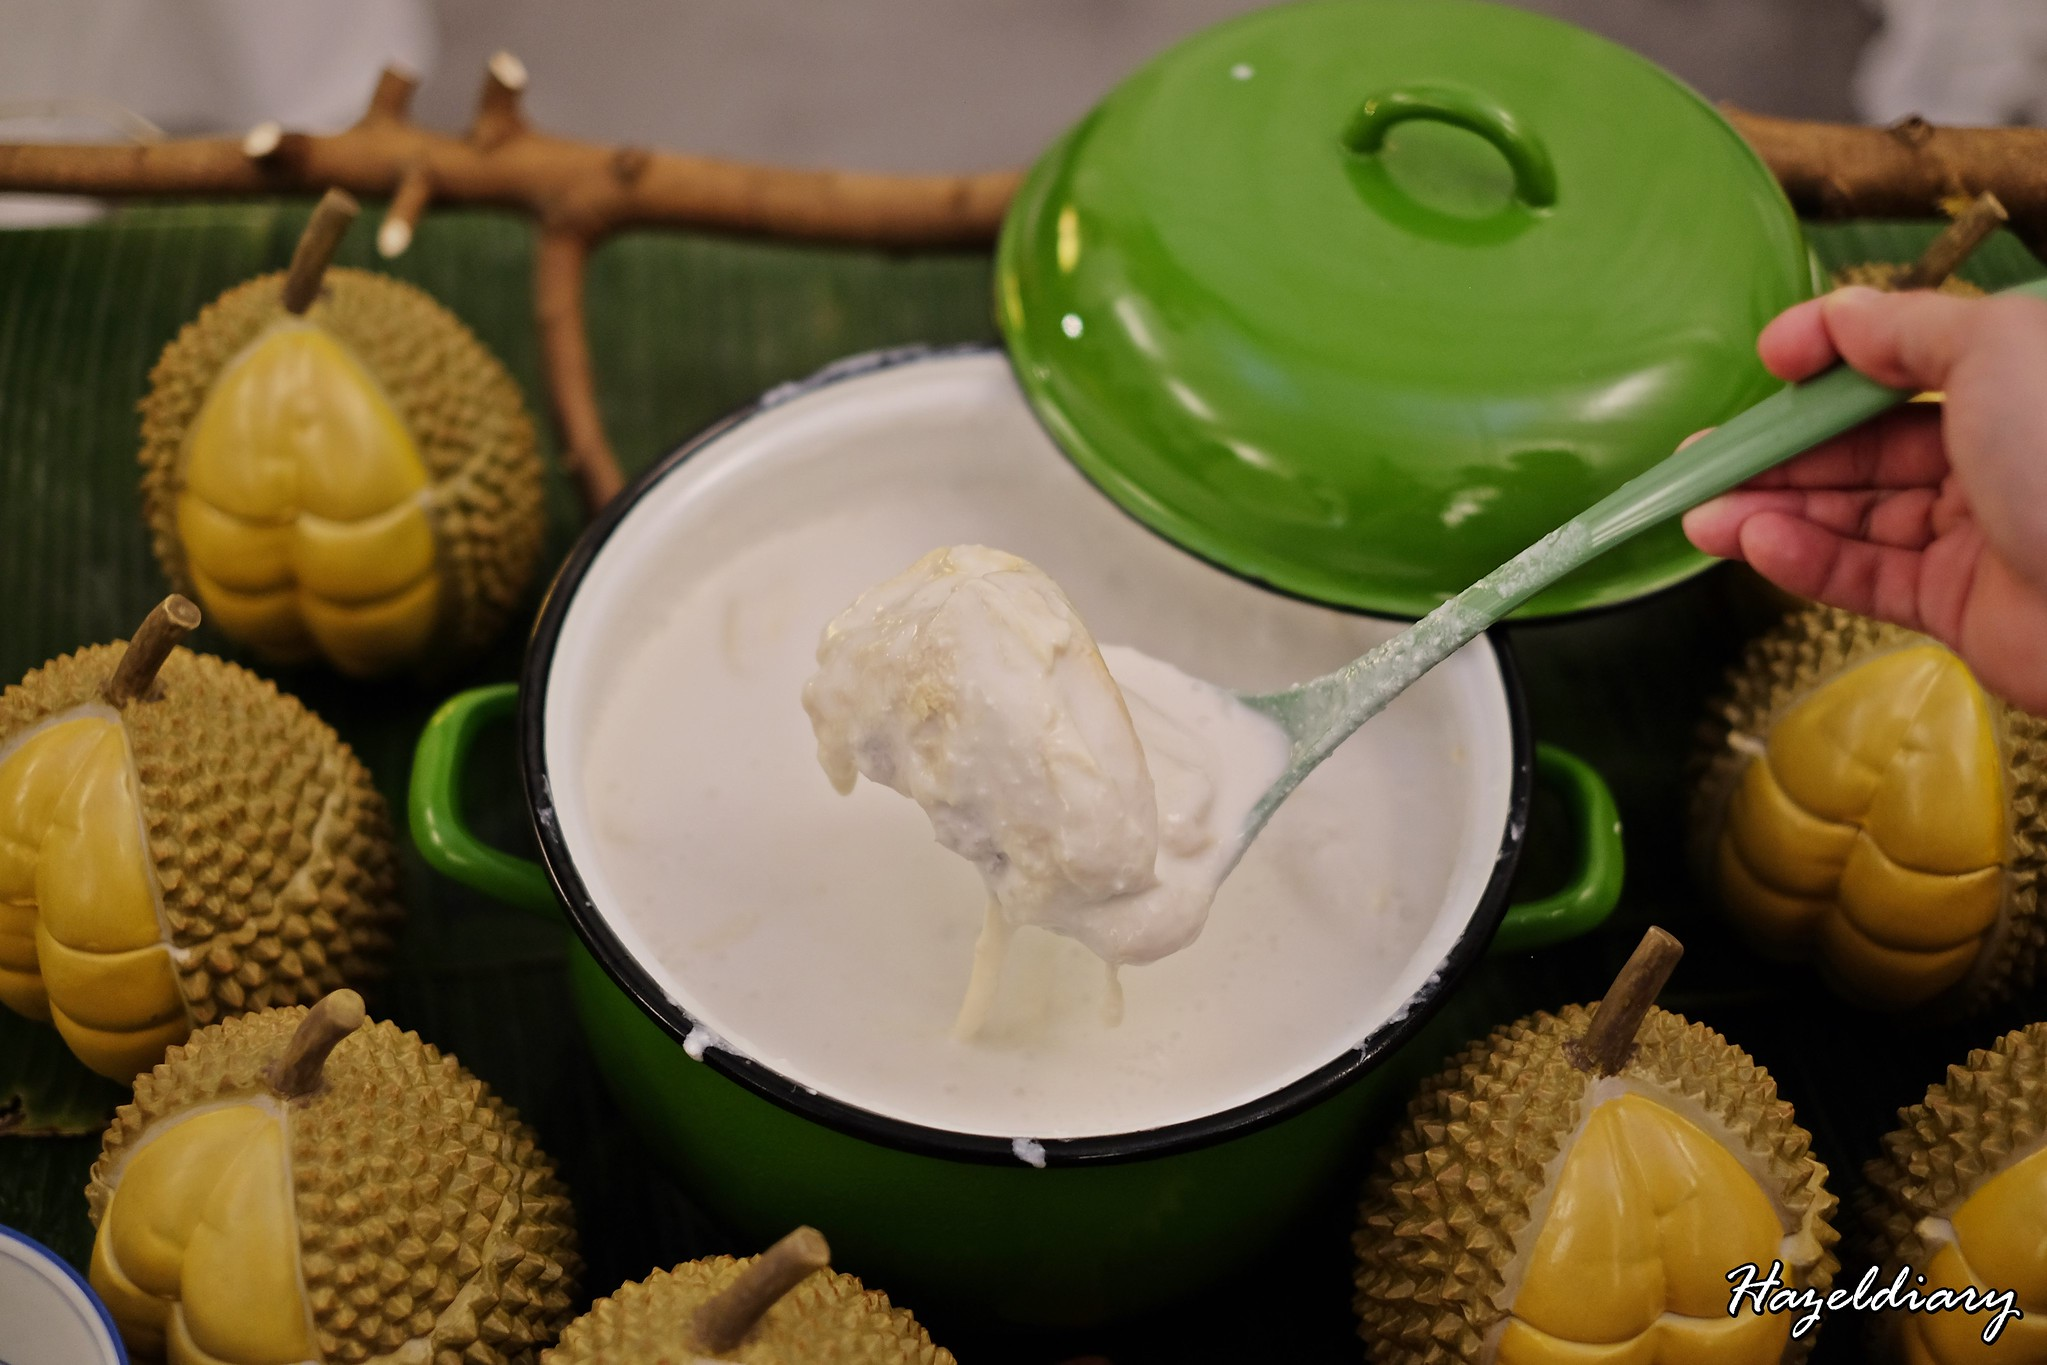 [SG EATS] Taiwan Porridge Fare At Coffee Lounge & Durian Fiesta 2019| Goodwood Park Hotel